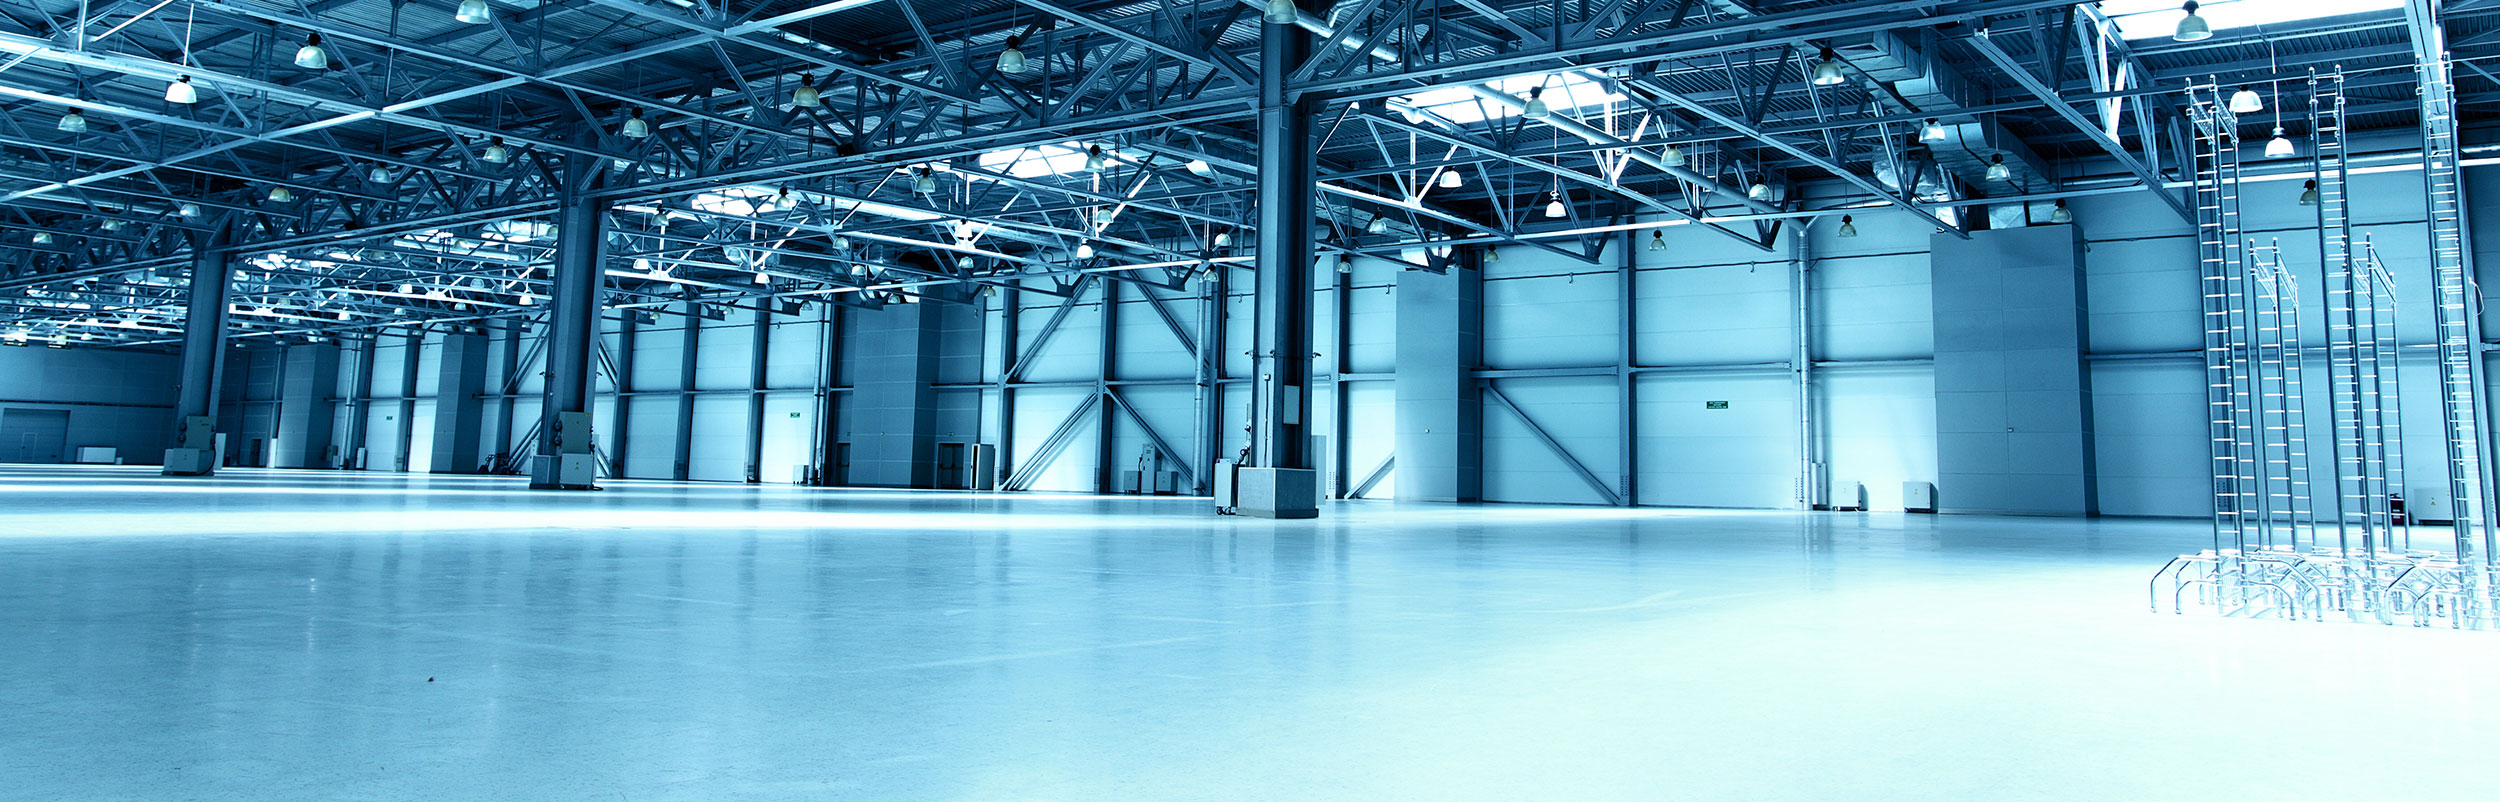 INDUSTRIAL REAL ESTATE INVESTMENTS